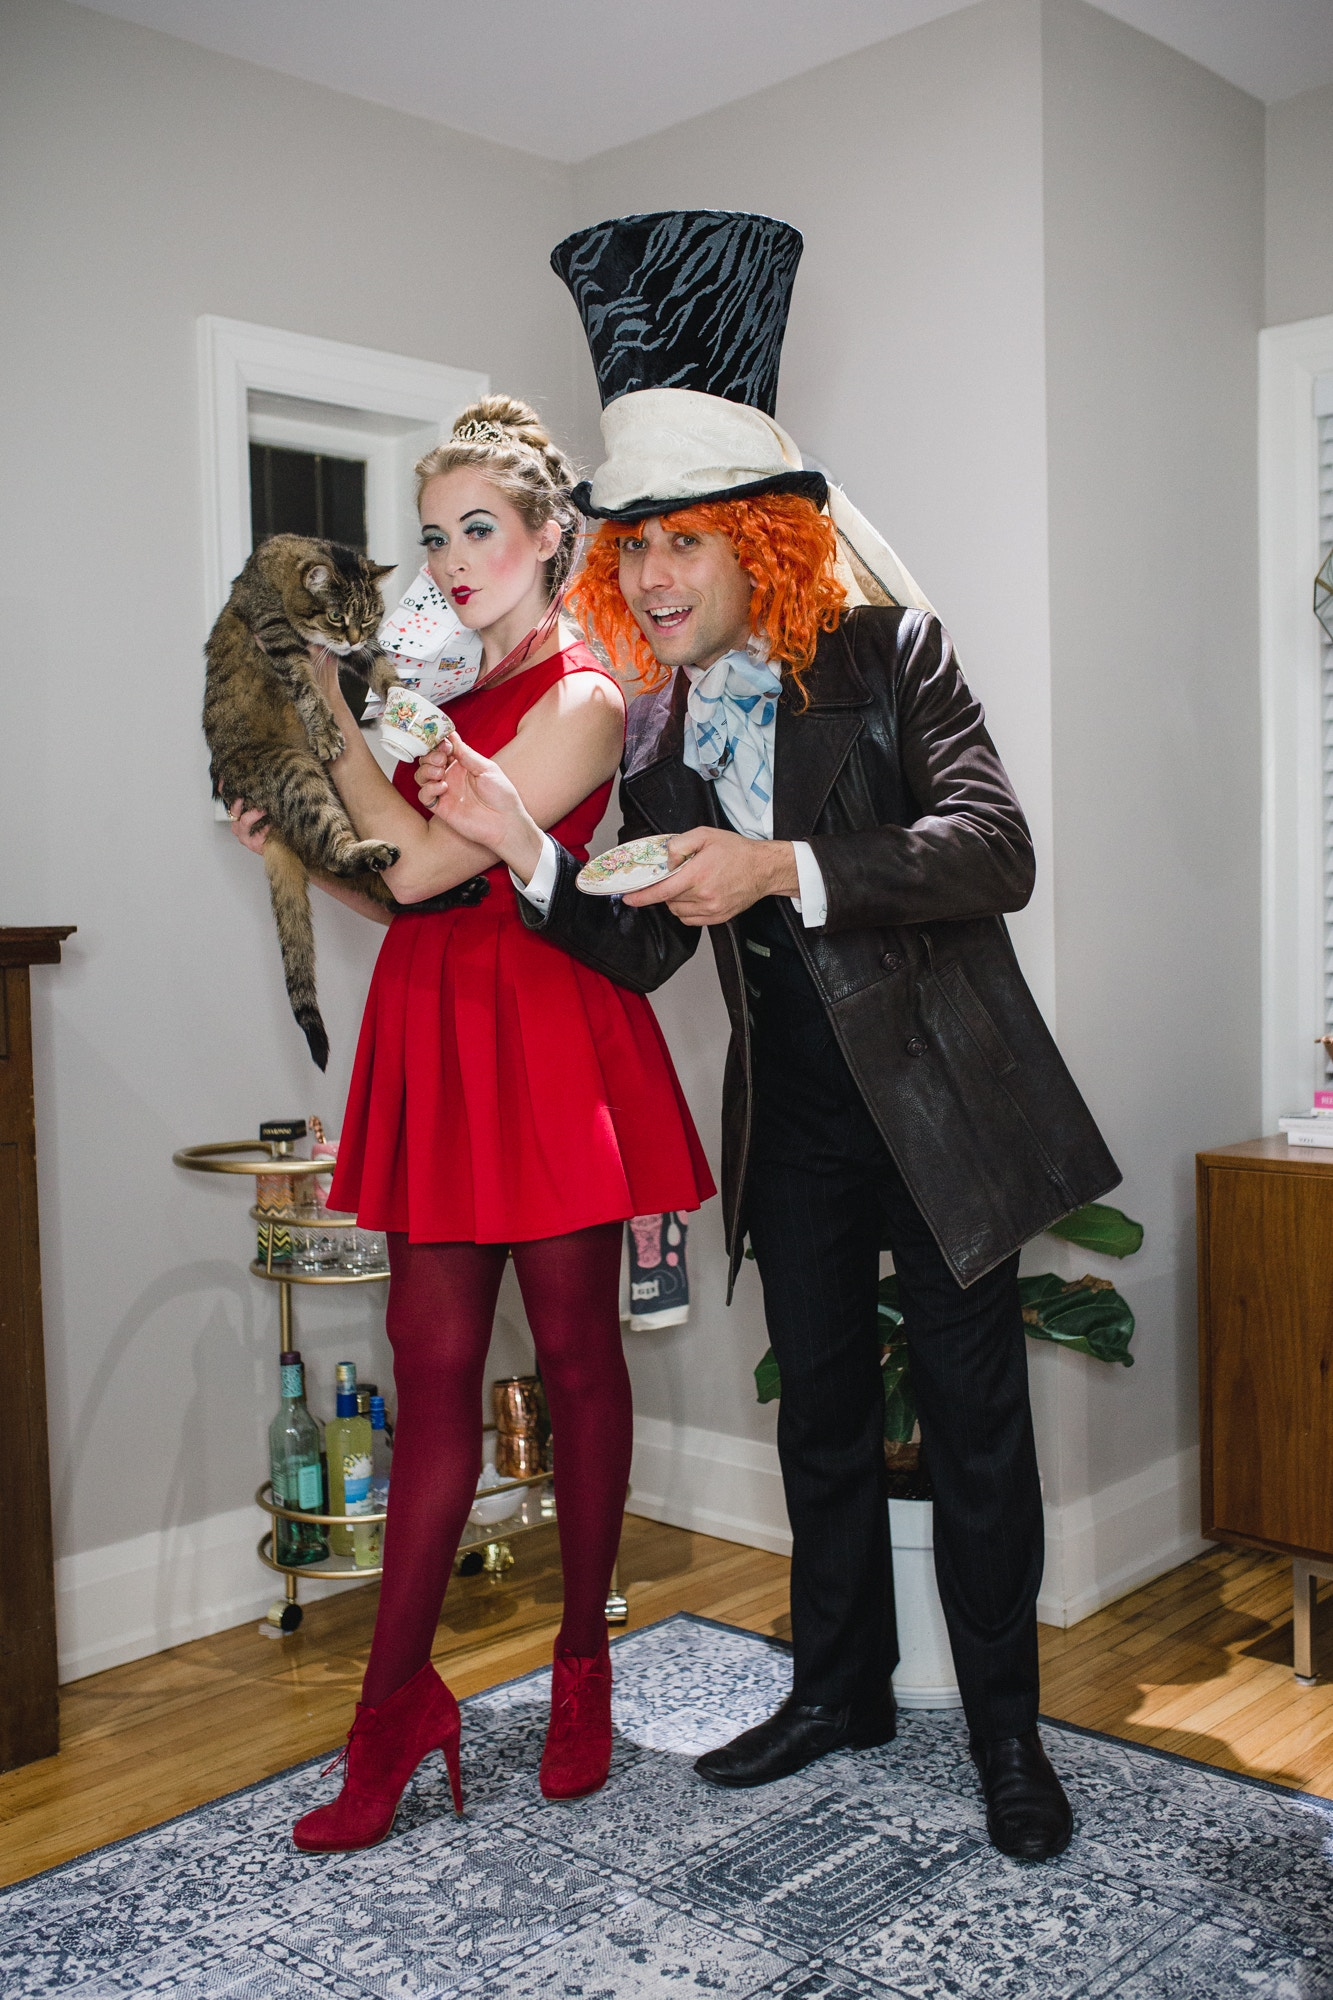 Alice in Wonderland couples halloween costume: Mad Hatter, Queen of Hearts and the Cheshire Cat